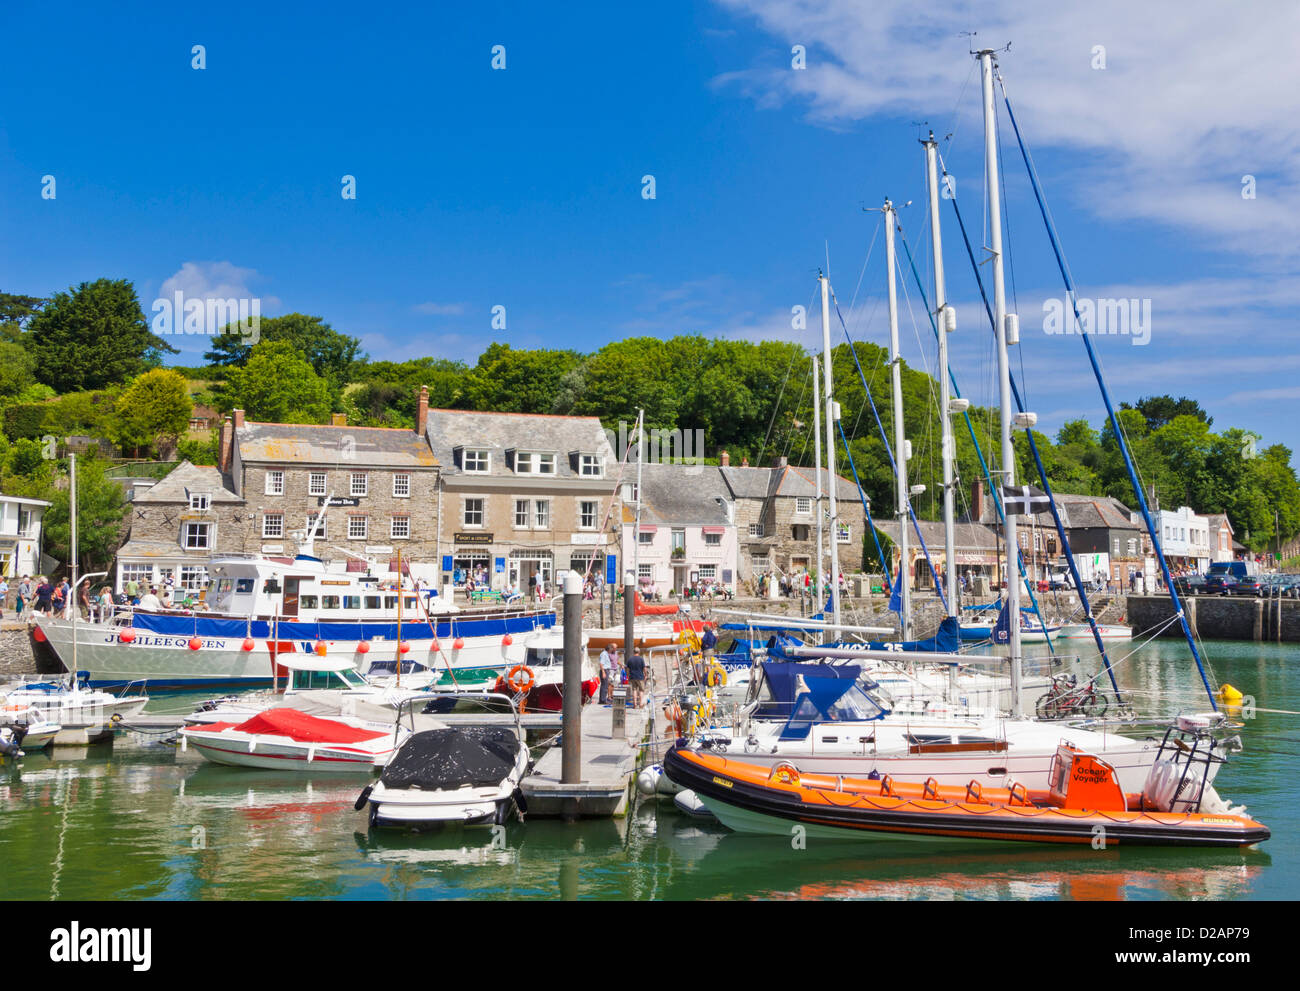 Boats moored in the harbour, Padstow, Cornwall, England, GB, UK, EU, Europe - Stock Image